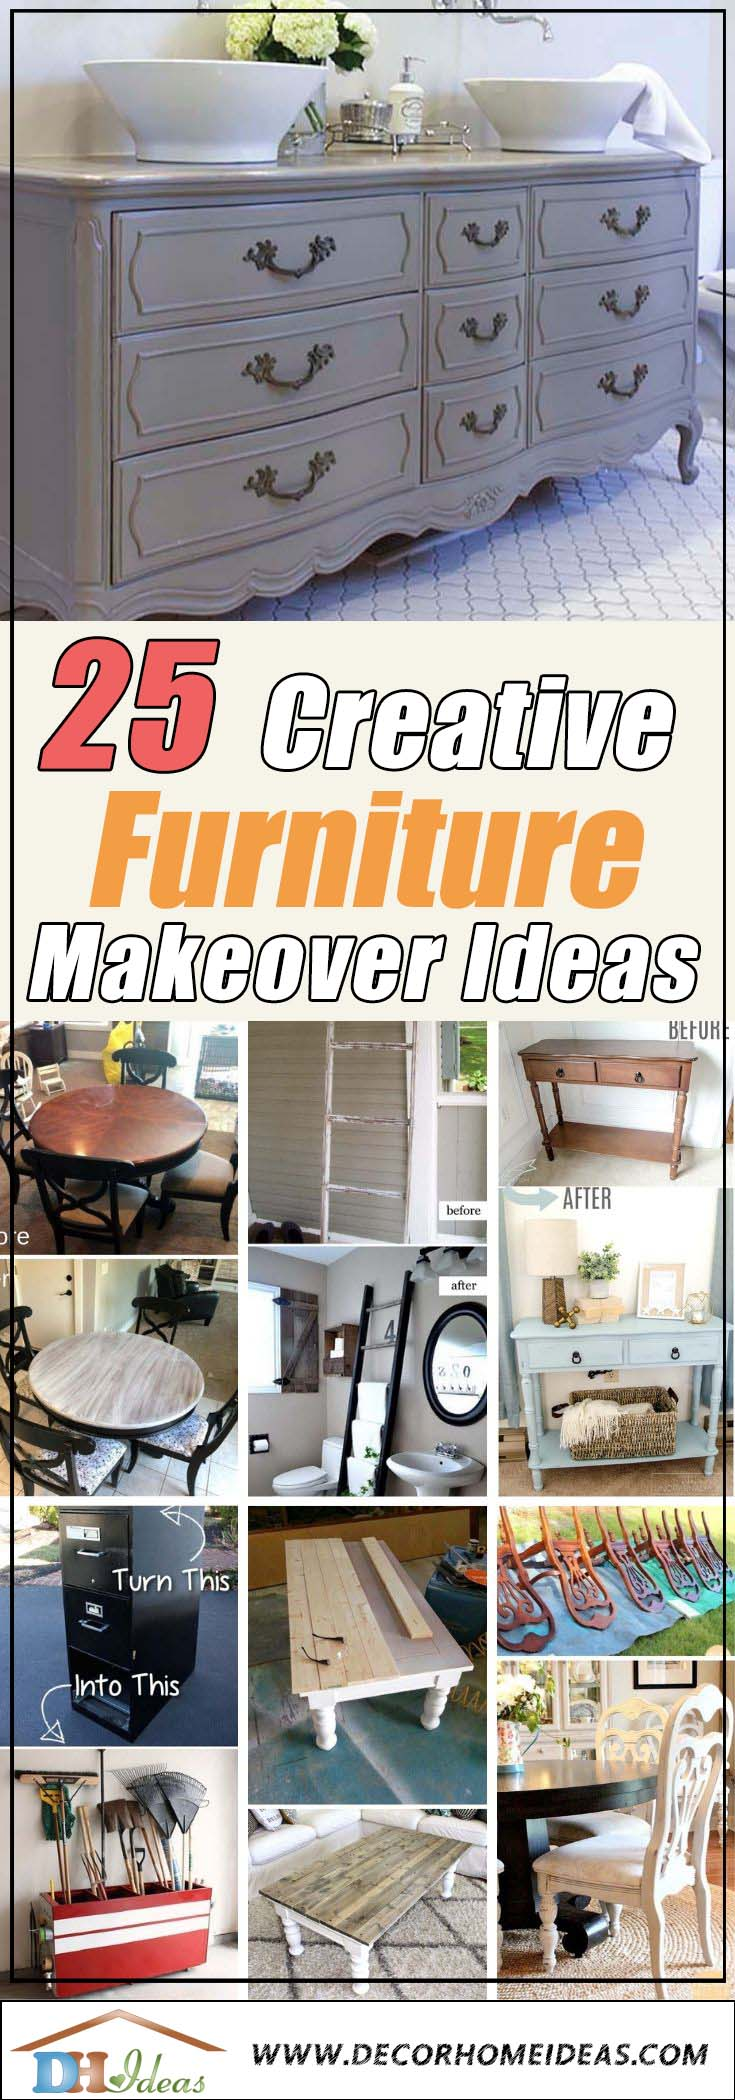 DIY Creative Furniture Makeovers #furniture #makeover #diy #decorhomeideas